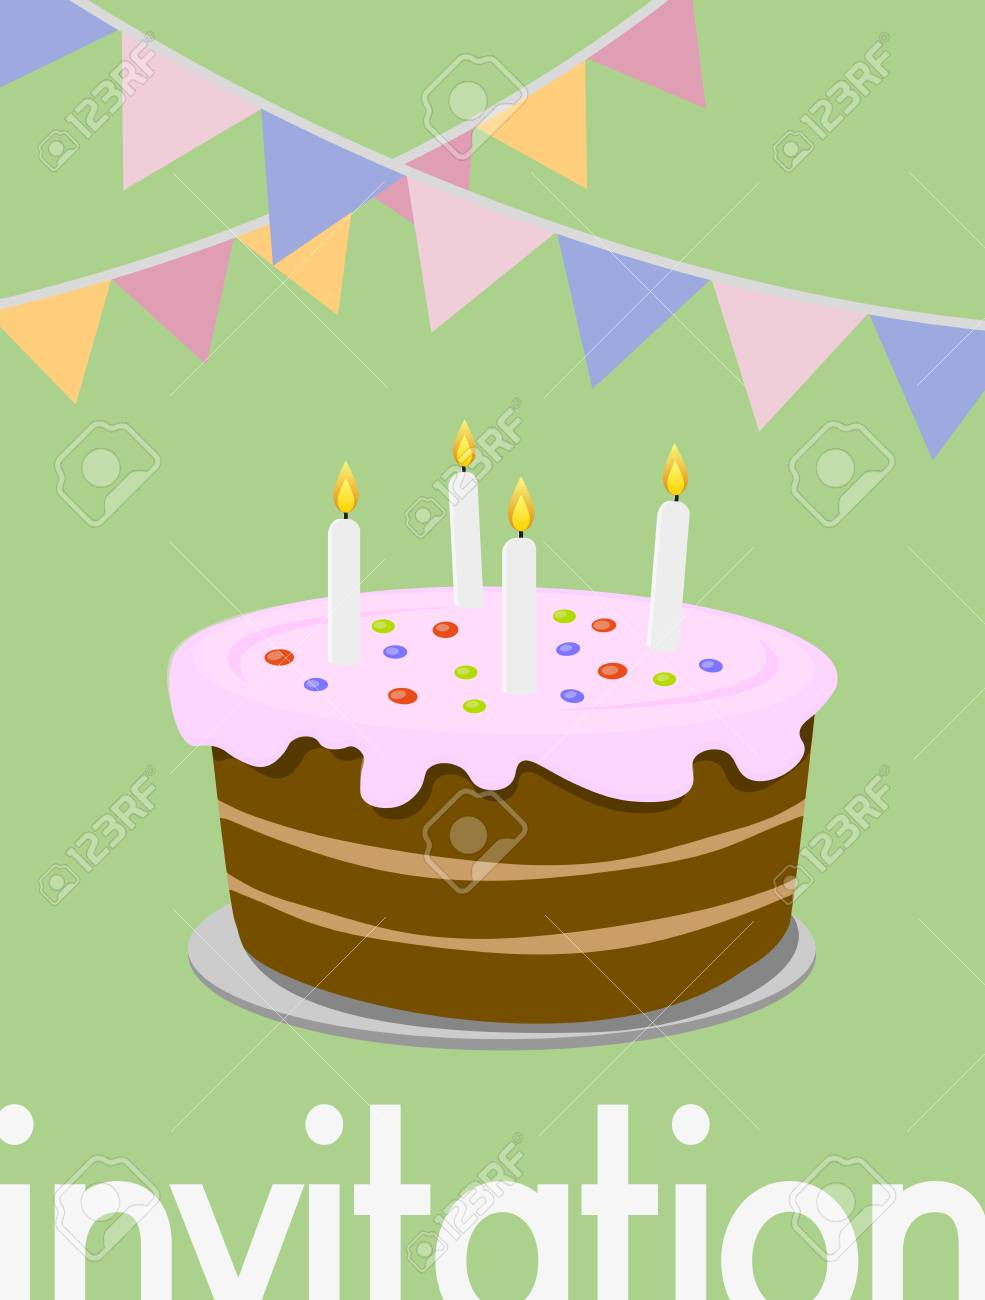 Happy Birthday Greeting Card With Colorful Birthday Cake